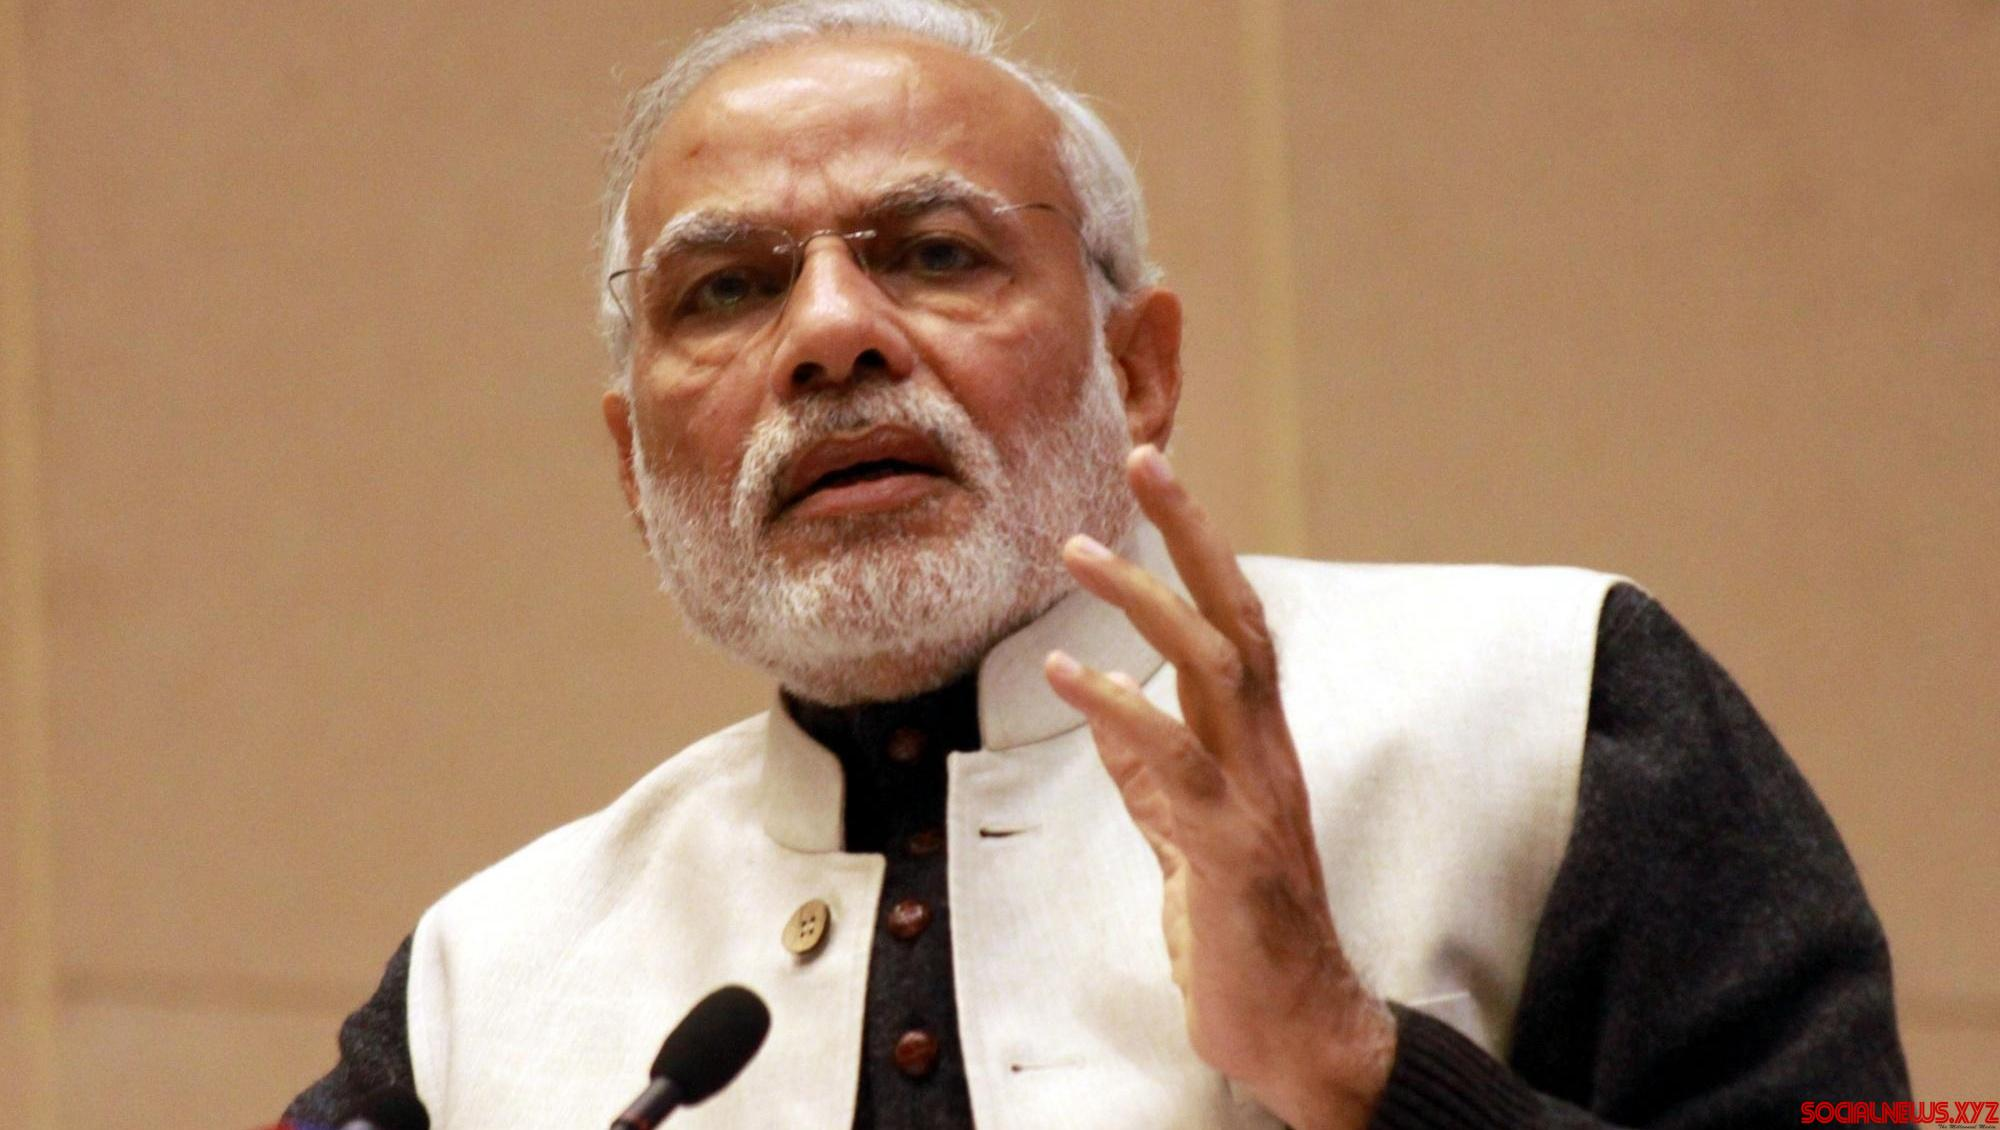 Congress pays lip service to farmers, national security punching bag: Modi